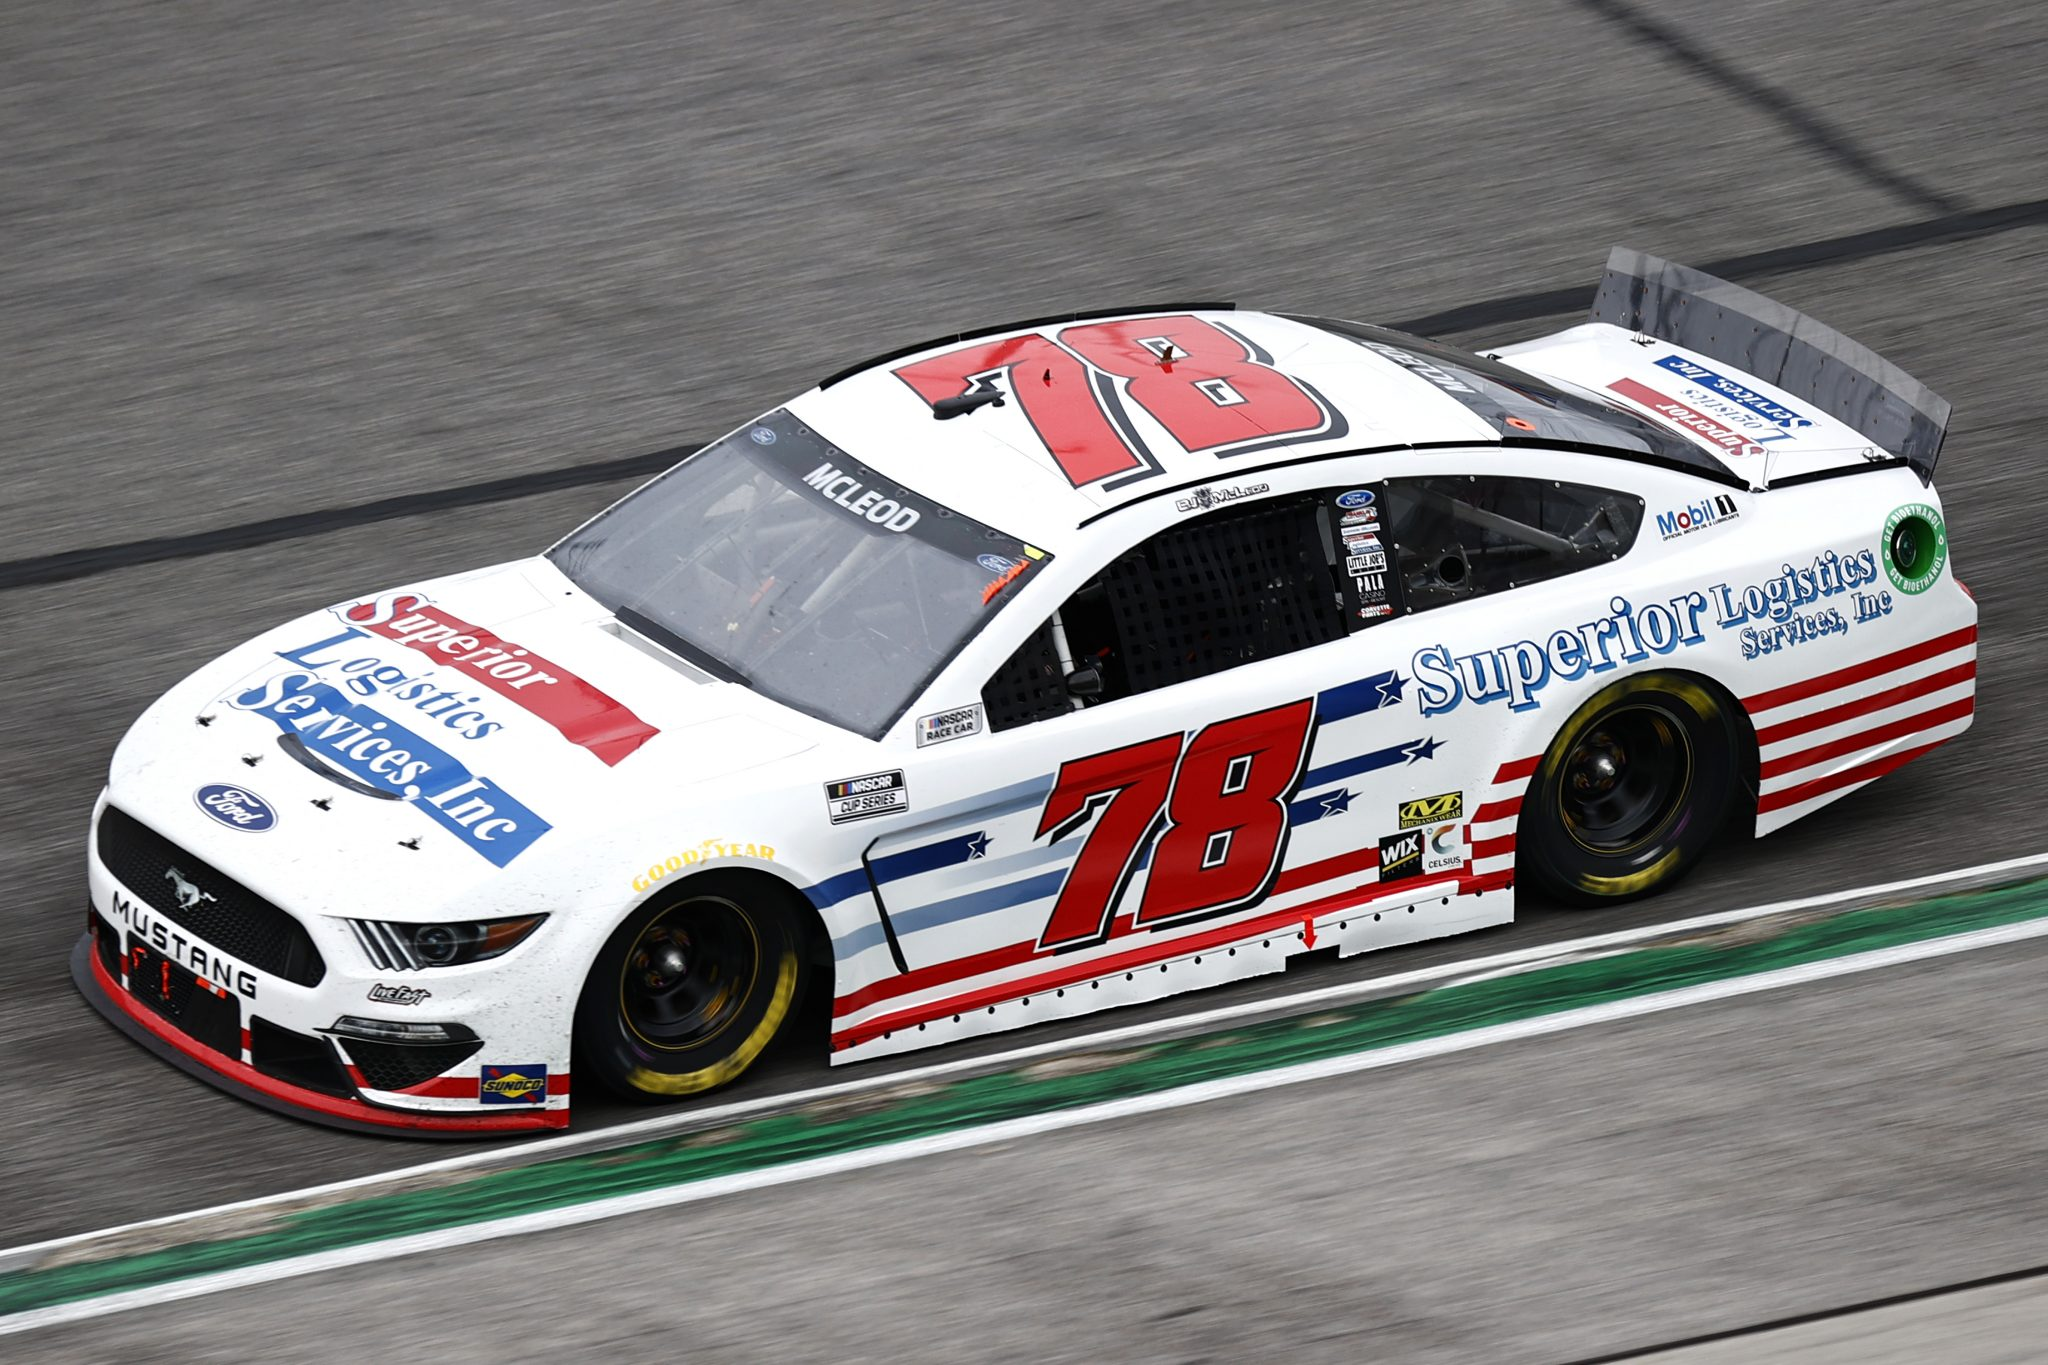 HAMPTON, GEORGIA - JULY 11: BJ McLeod, driver of the #78 Superior Logistics Services Ford, drives during the NASCAR Cup Series Quaker State 400 presented by Walmart at Atlanta Motor Speedway on July 11, 2021 in Hampton, Georgia. (Photo by Jared C. Tilton/Getty Images)   Getty Images